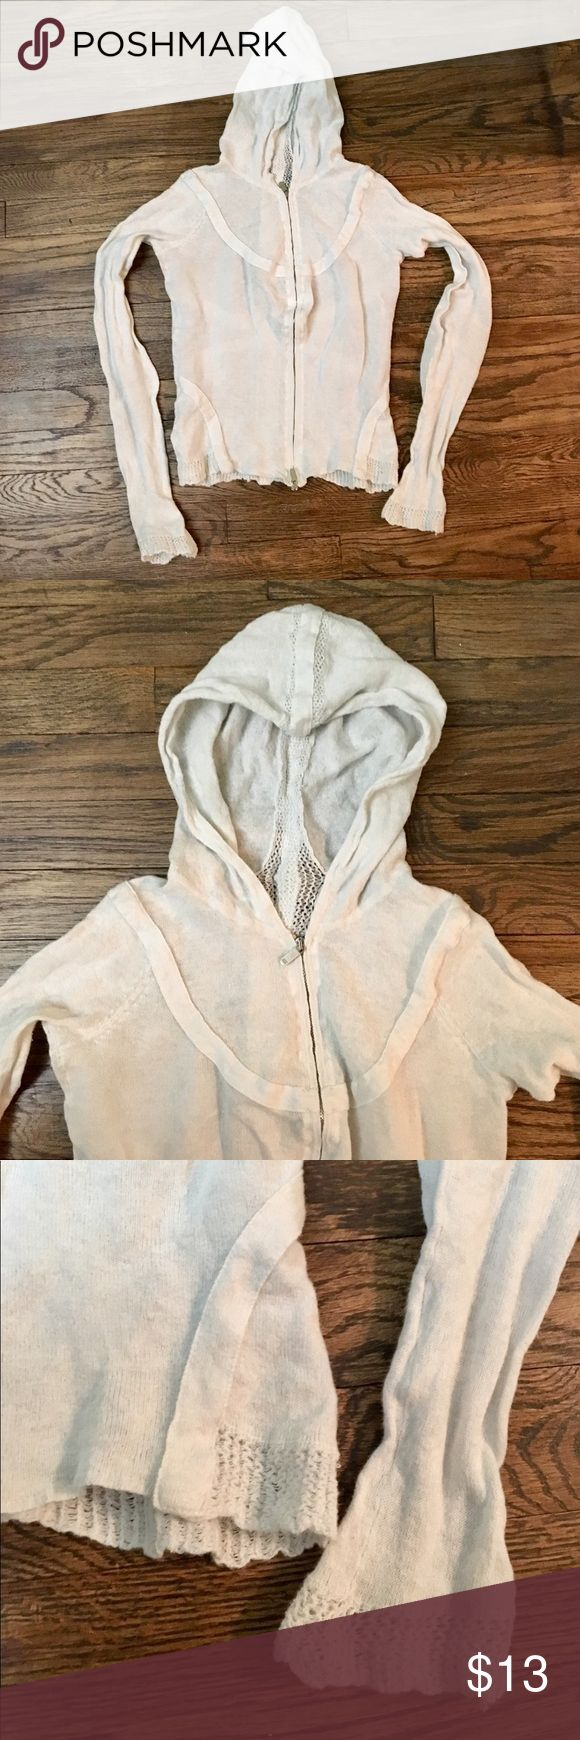 🌸Adorable white hooded zip up with flirty detail This is a great staple piece. It's a zip up white sheer zip up with crochet and stitching detail on the back/cuffs & bottom. It's GUC with no stains or tears. A/X Armani Exchange Tops Sweatshirts & Hoodies